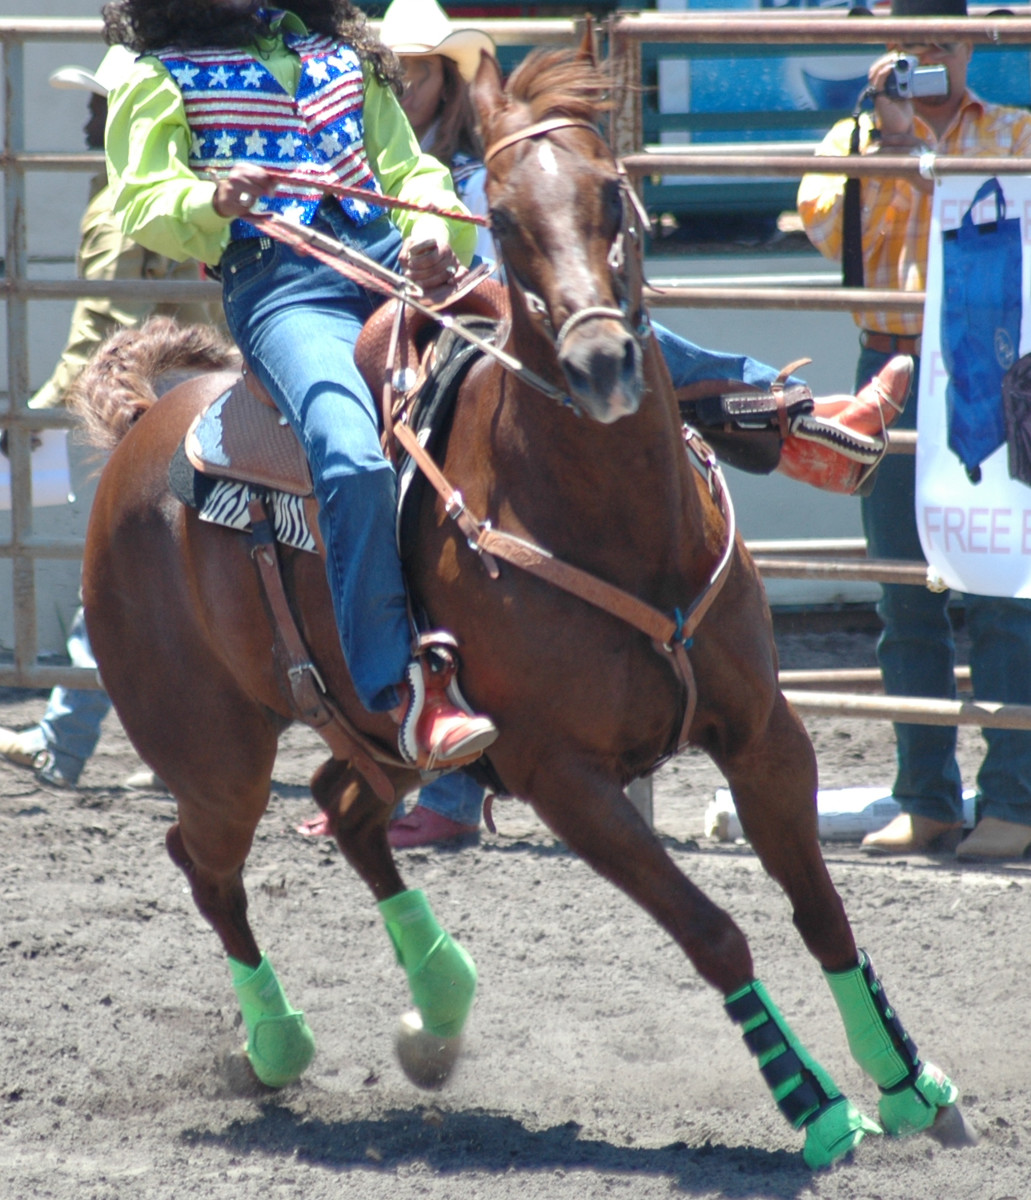 Horse Training Tips: How to Train for Barrel Racing, With Video